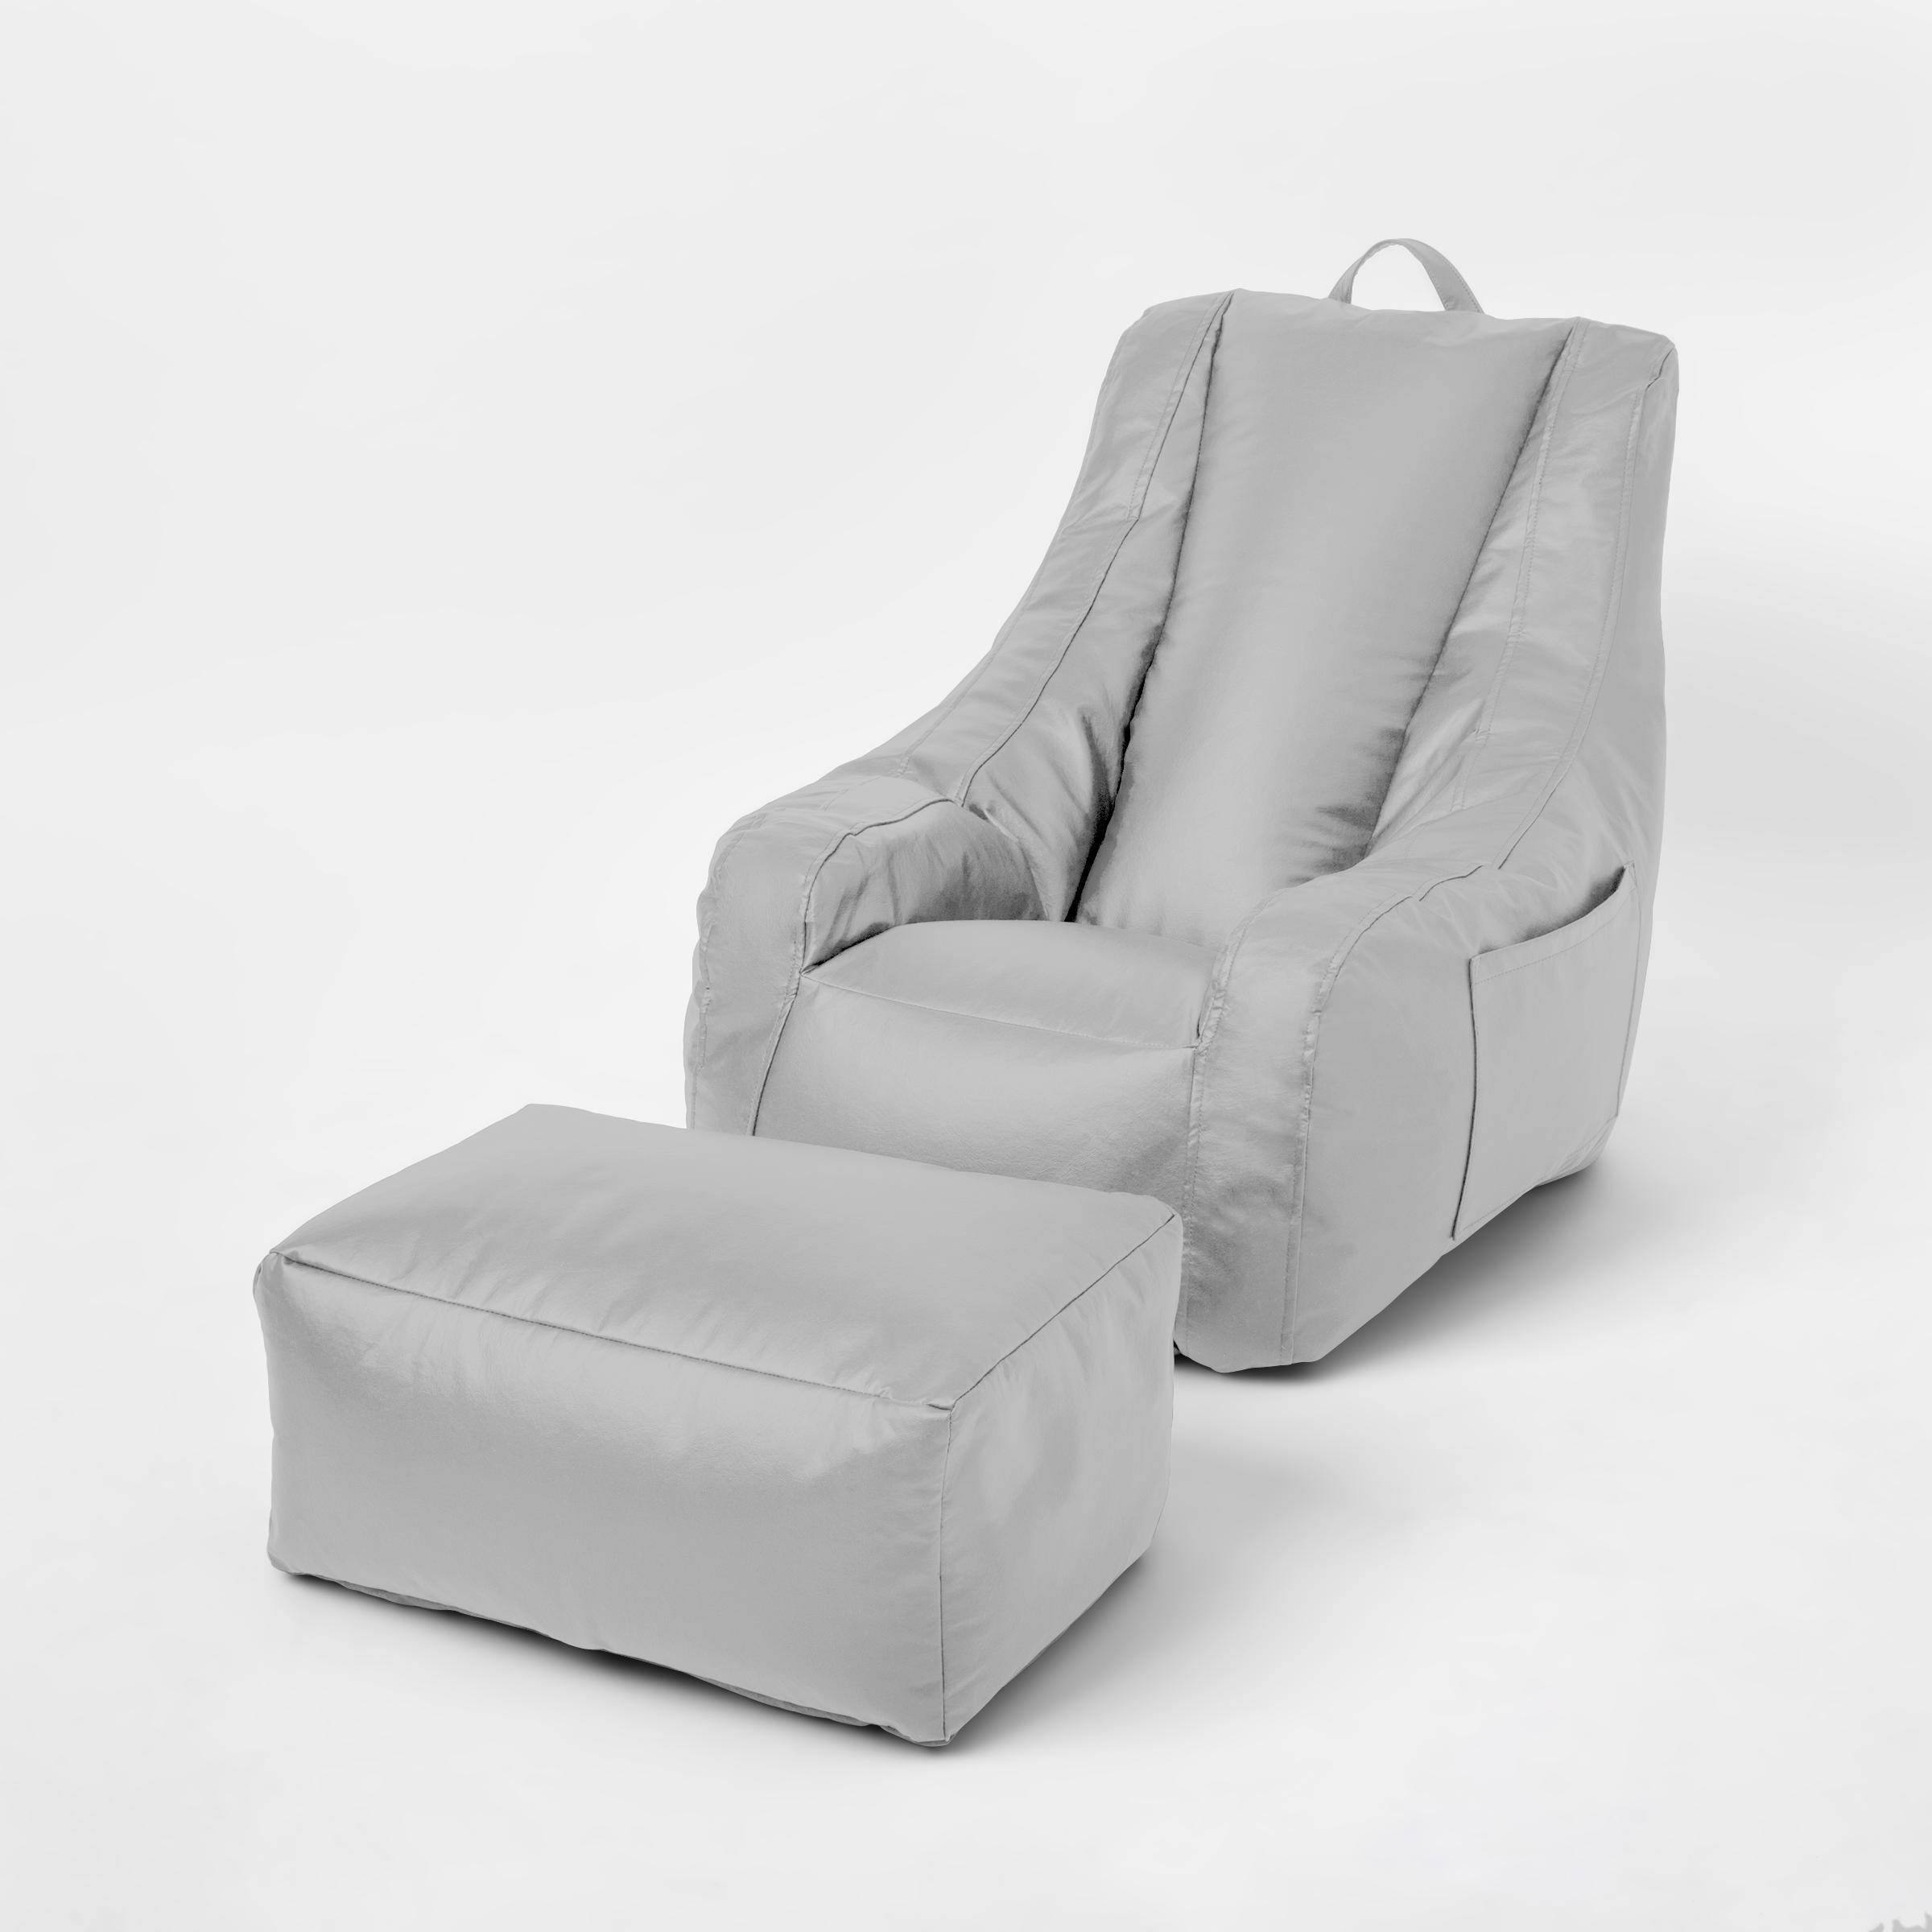 Supportive Chair with Pocket & Ottoman